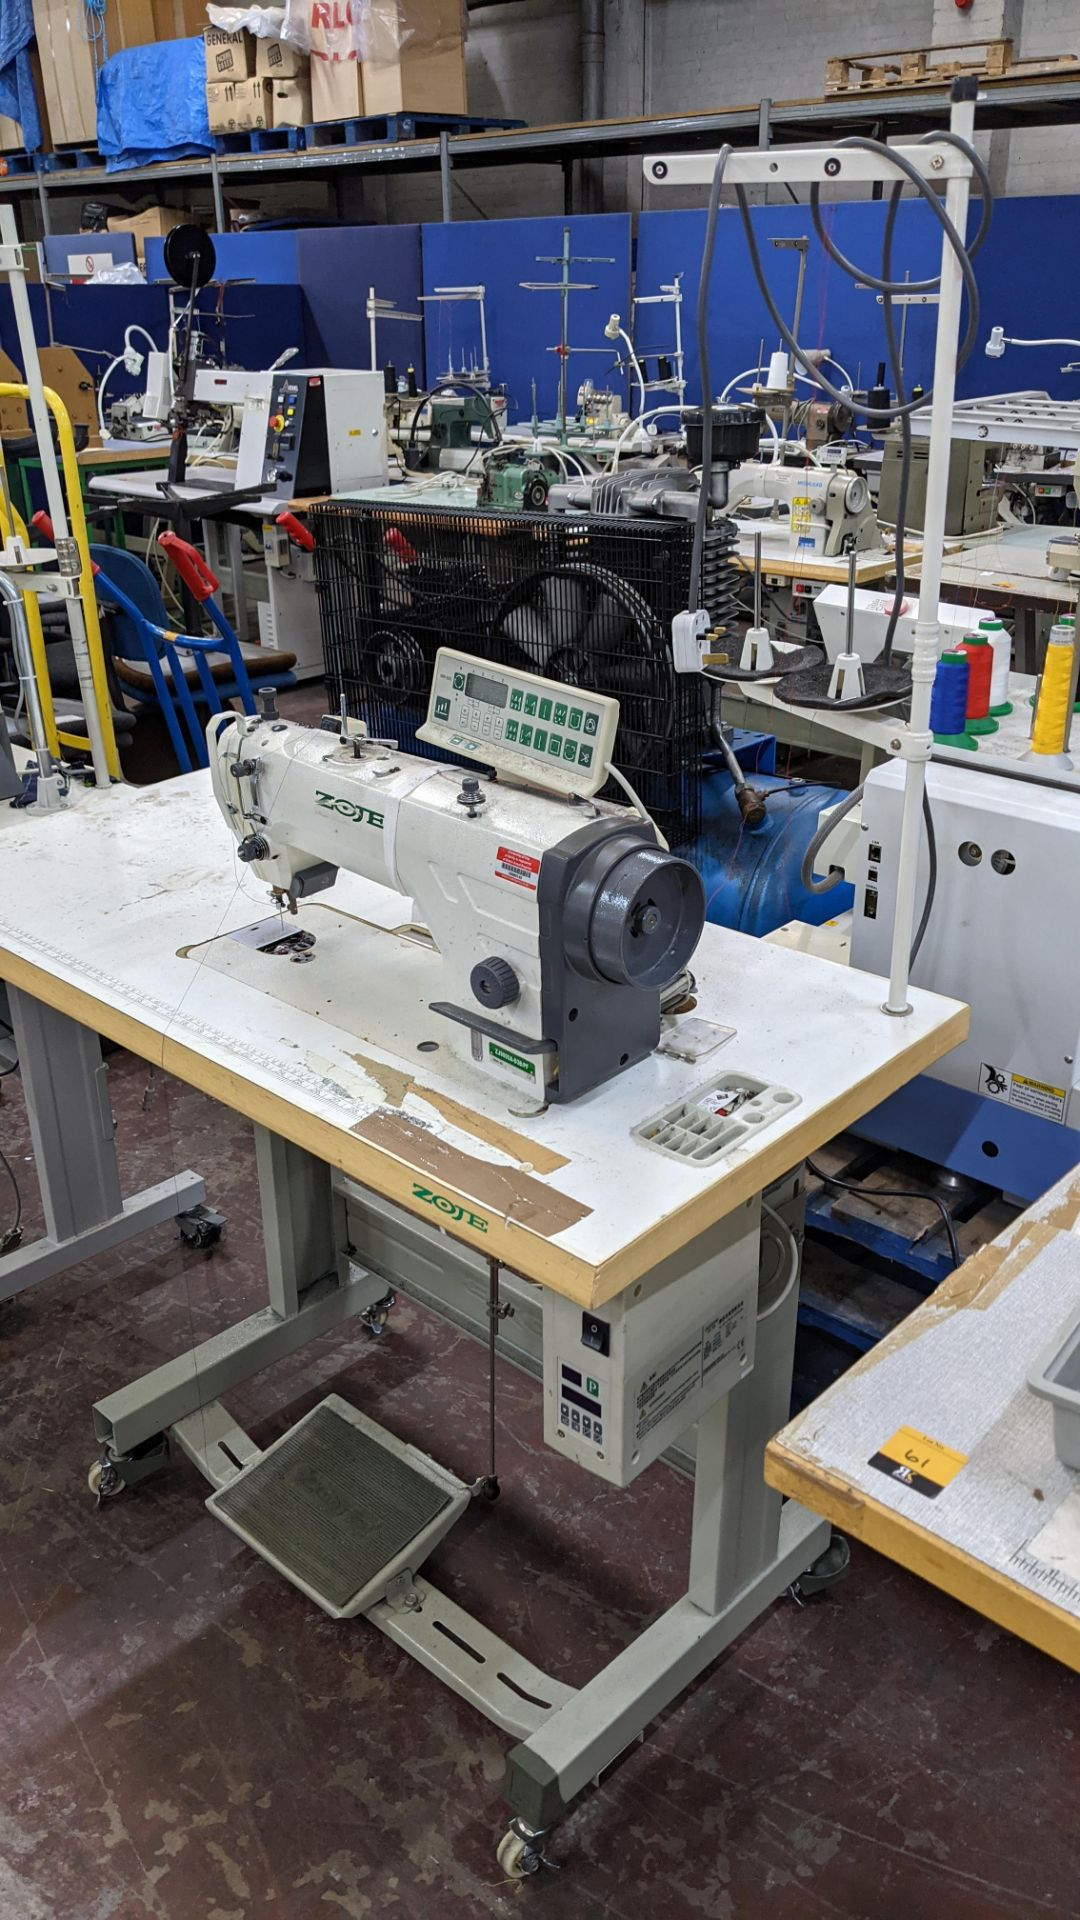 Zoje model ZJ9800A-D3B/PF sewing machine with WR-501 controller - Image 3 of 16